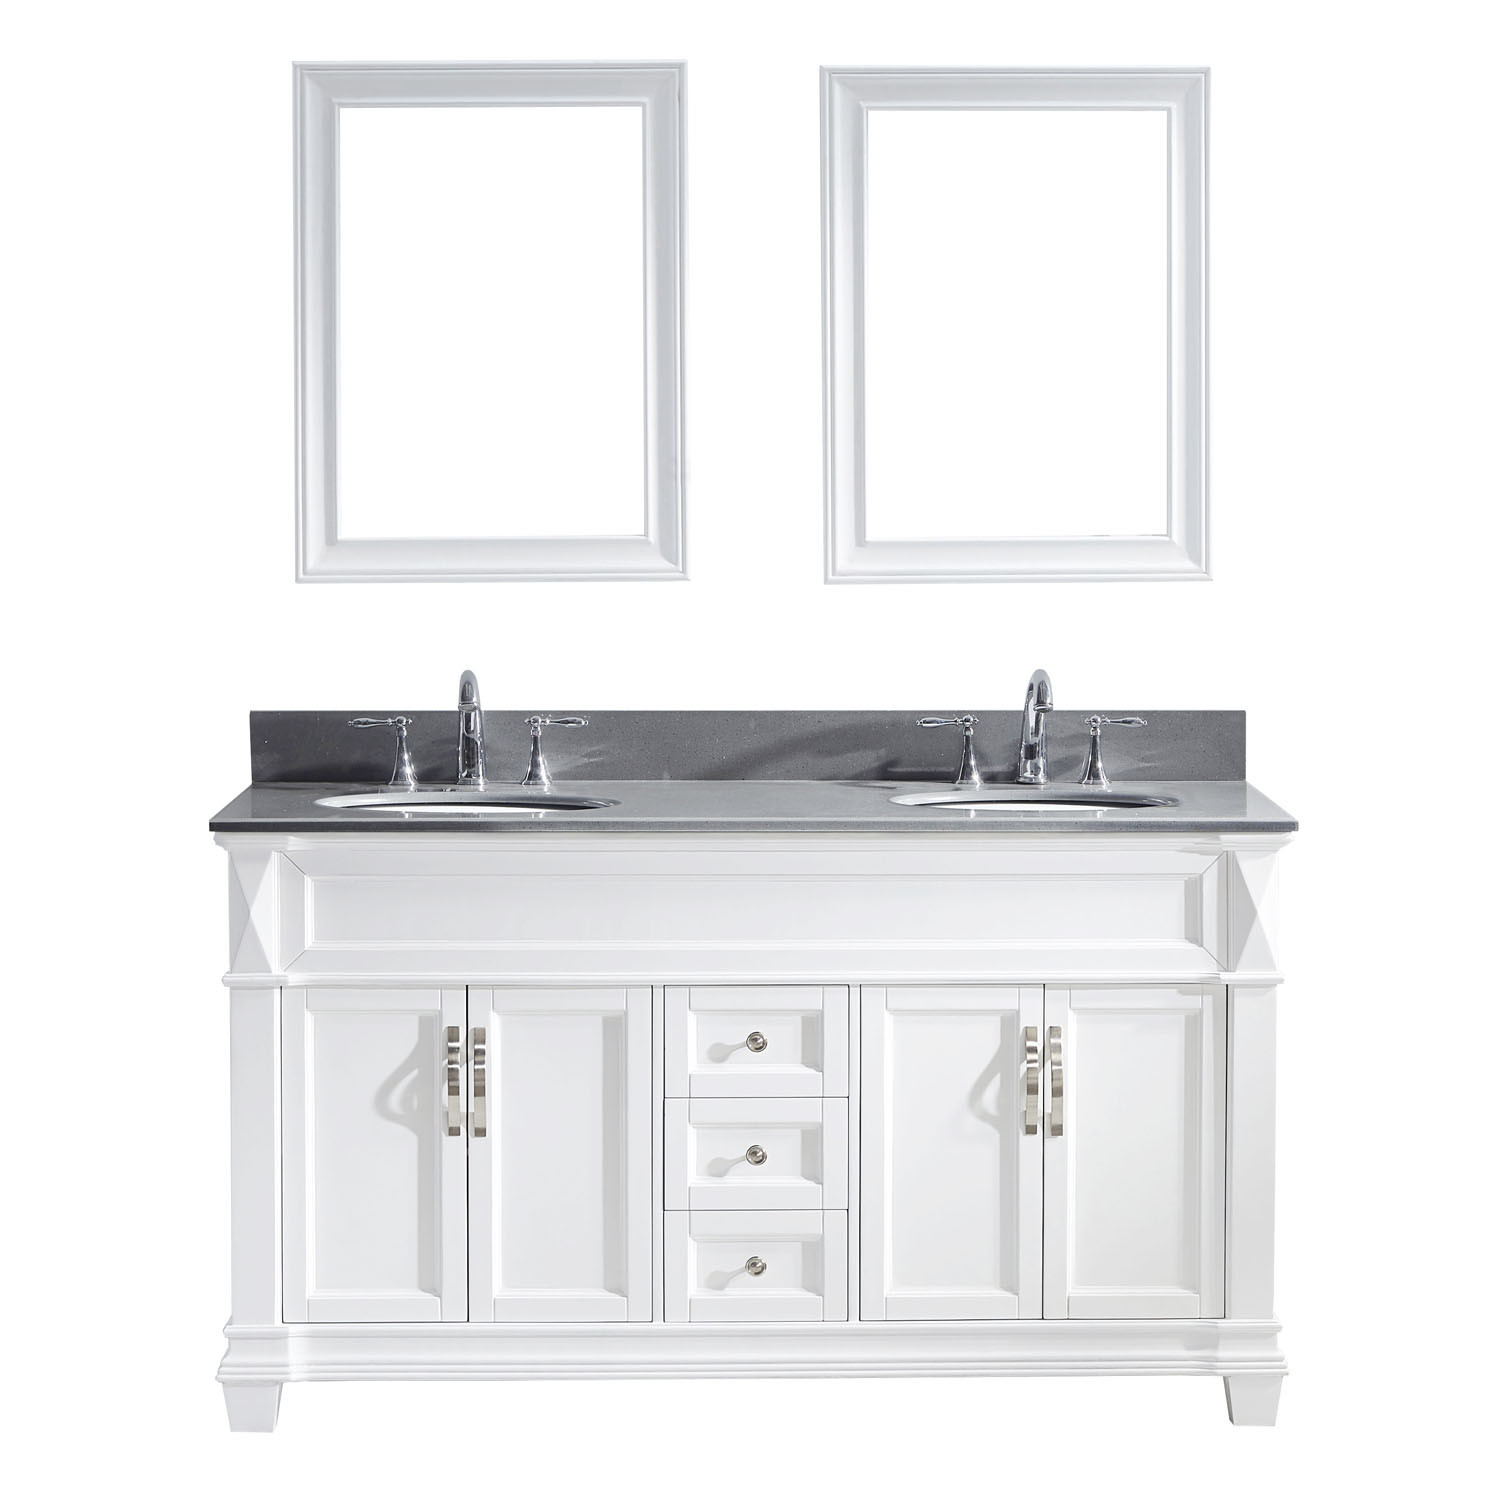 Virtu MD-2660-GQRO-WH-002 Victoria 60 Inch Double Bathroom Vanity Set In White